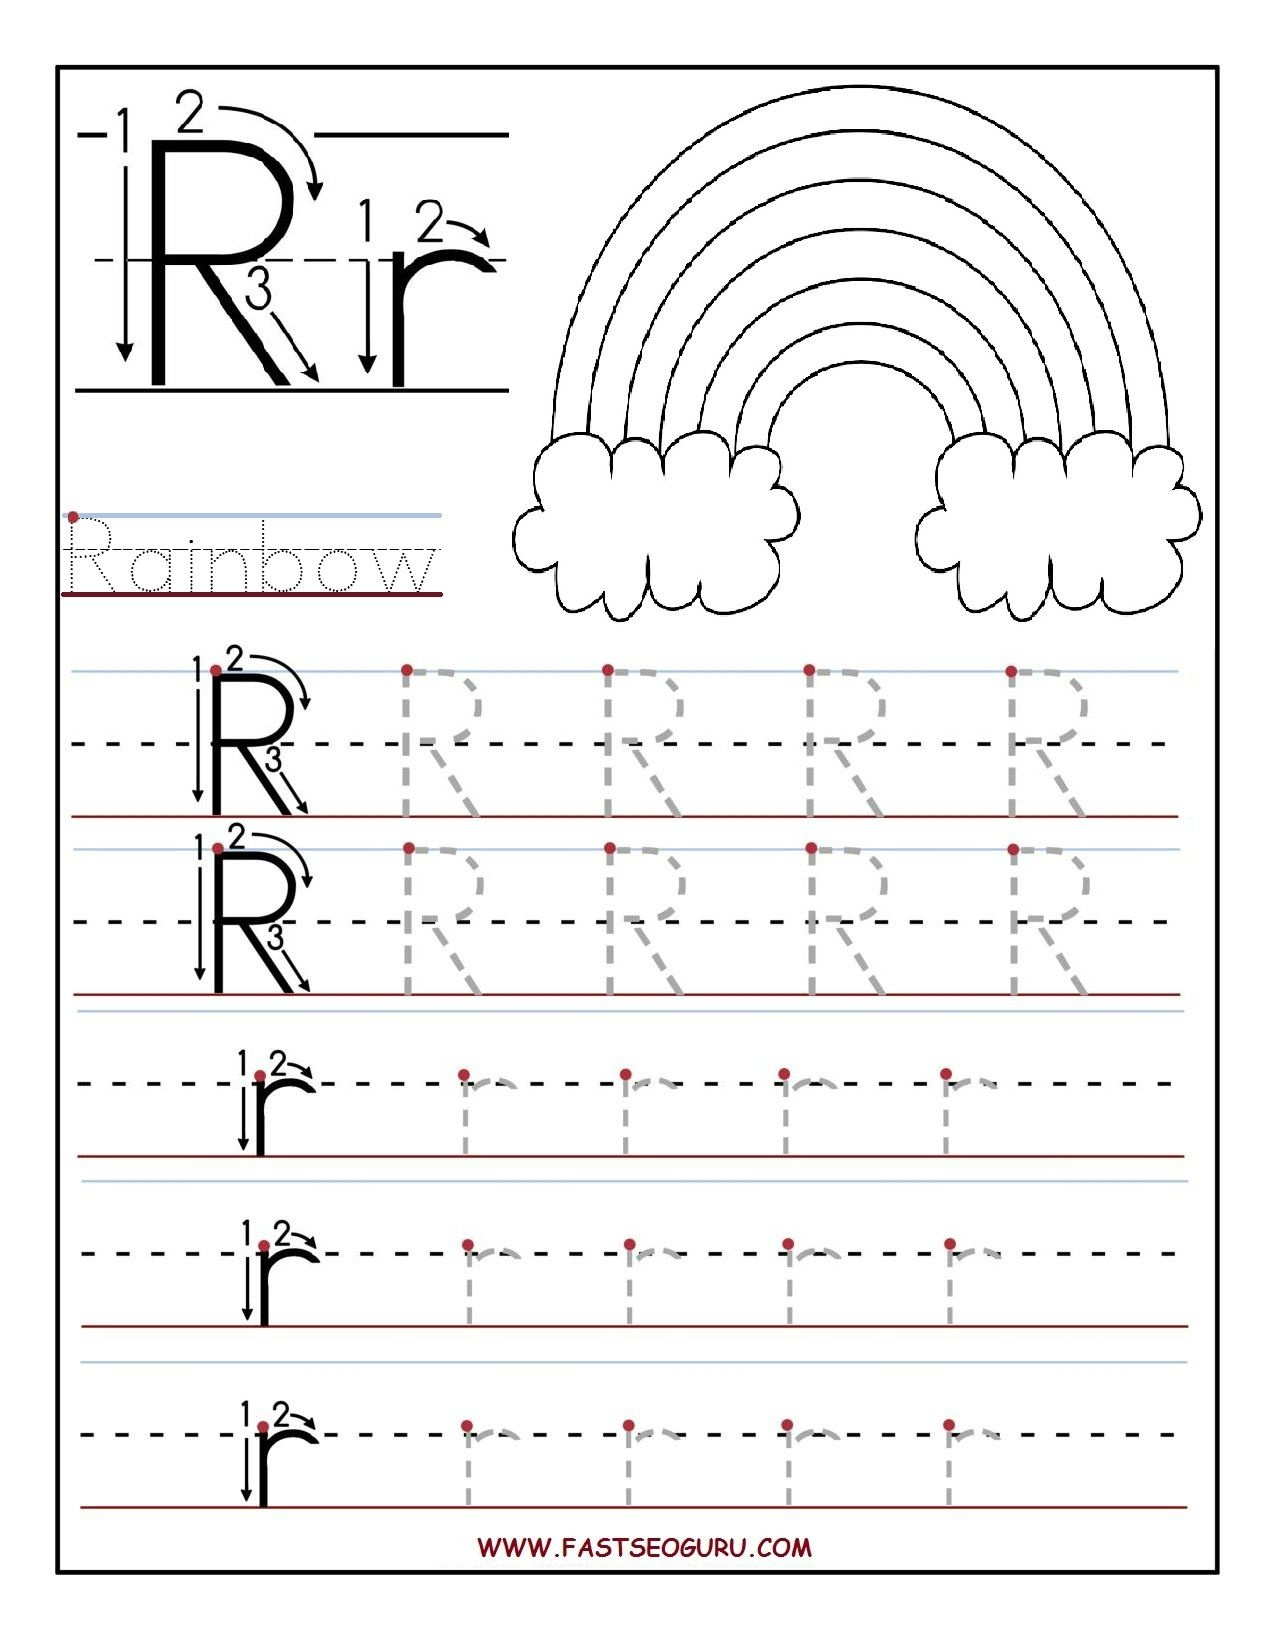 Printable Letter R Tracing Worksheets For Preschool   Teacher - Free Printable Preschool Worksheets For The Letter R